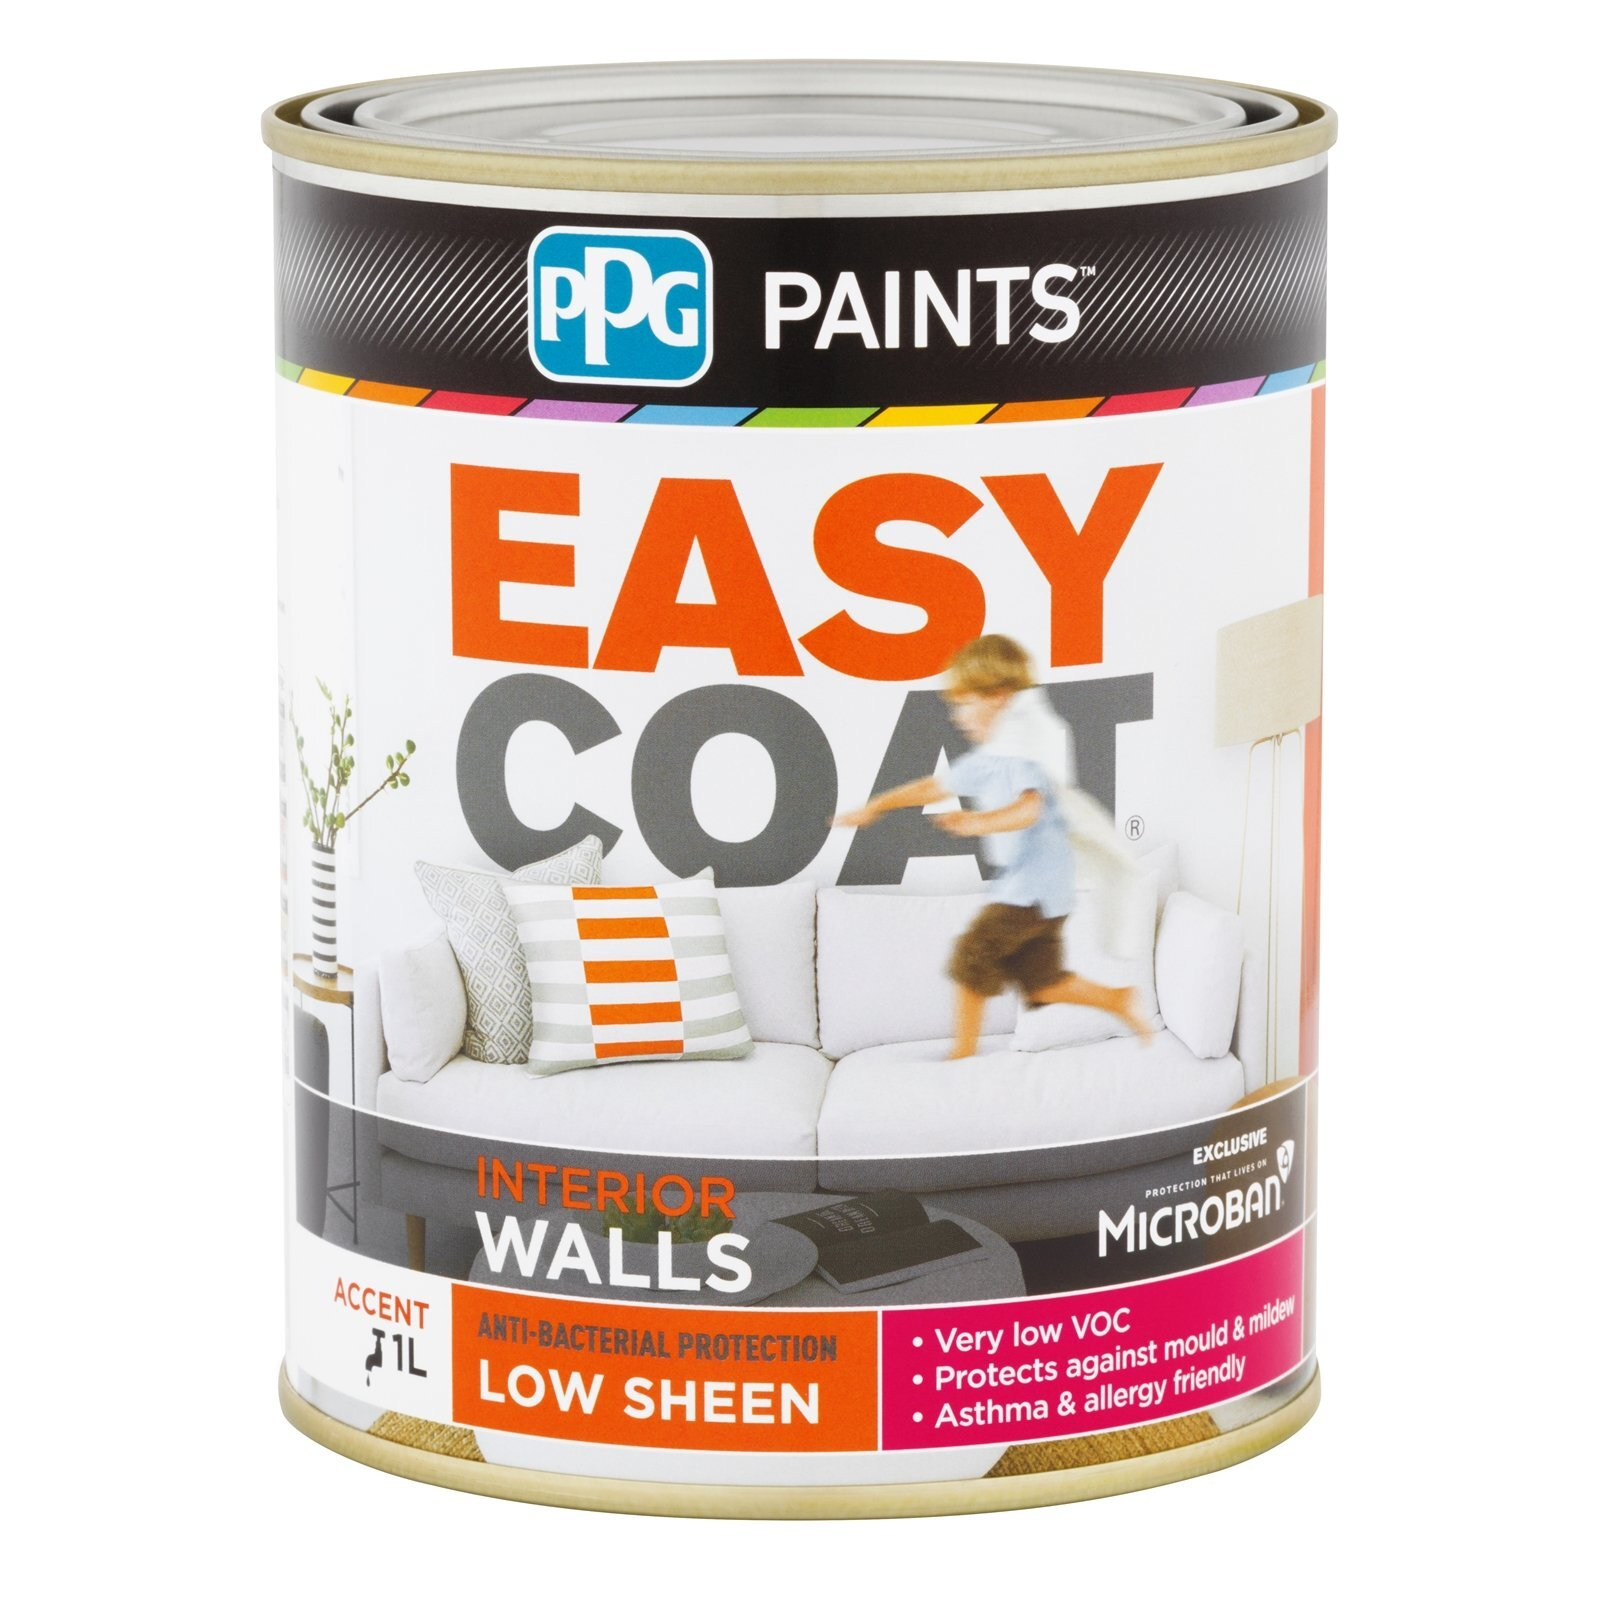 PPG Paints 1L Accent Low Sheen Easycoat Interior Wall Paint